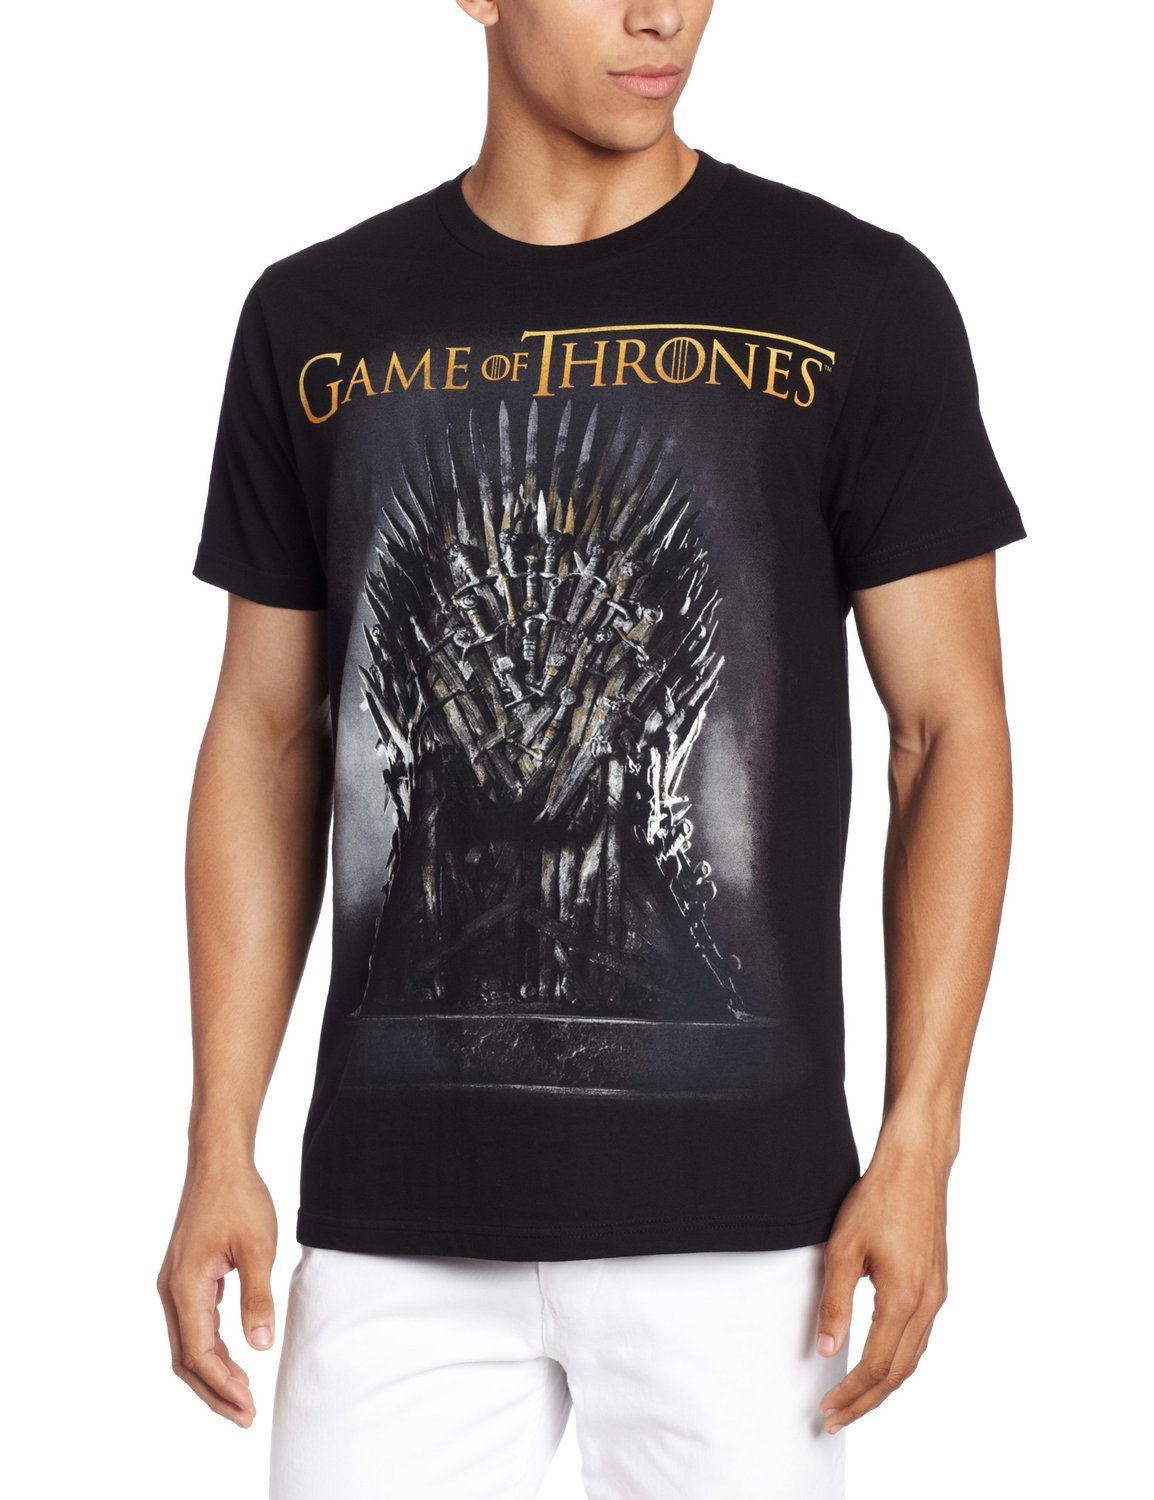 Iron throne t shirt game of thrones for Throne of games shirt